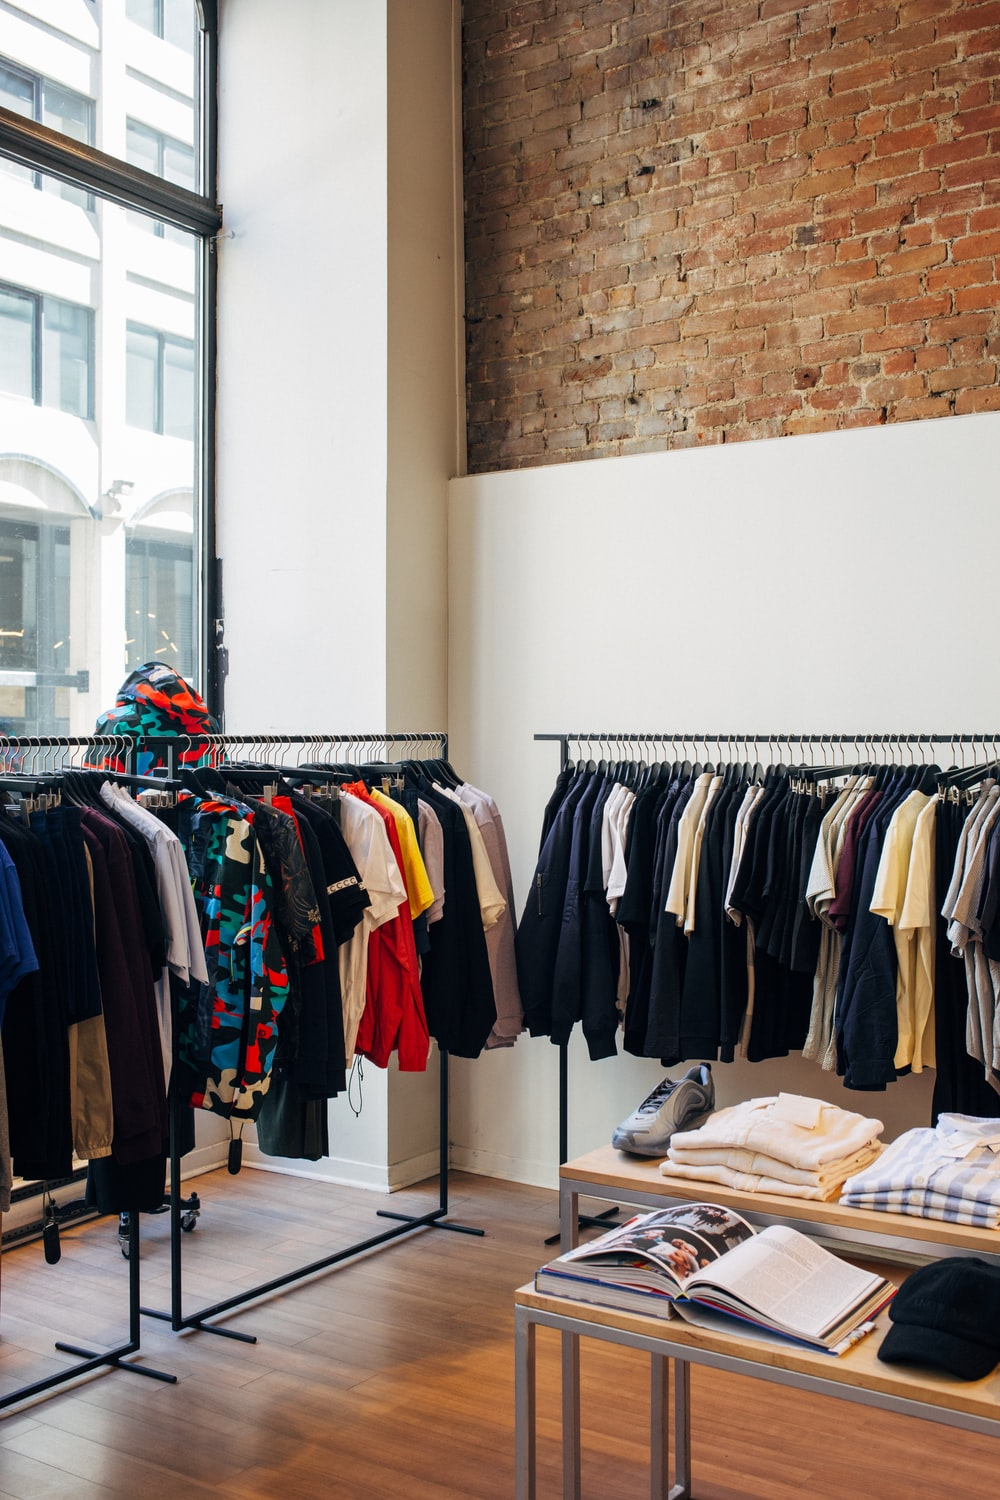 assorted-color clothes hanging on metal racks